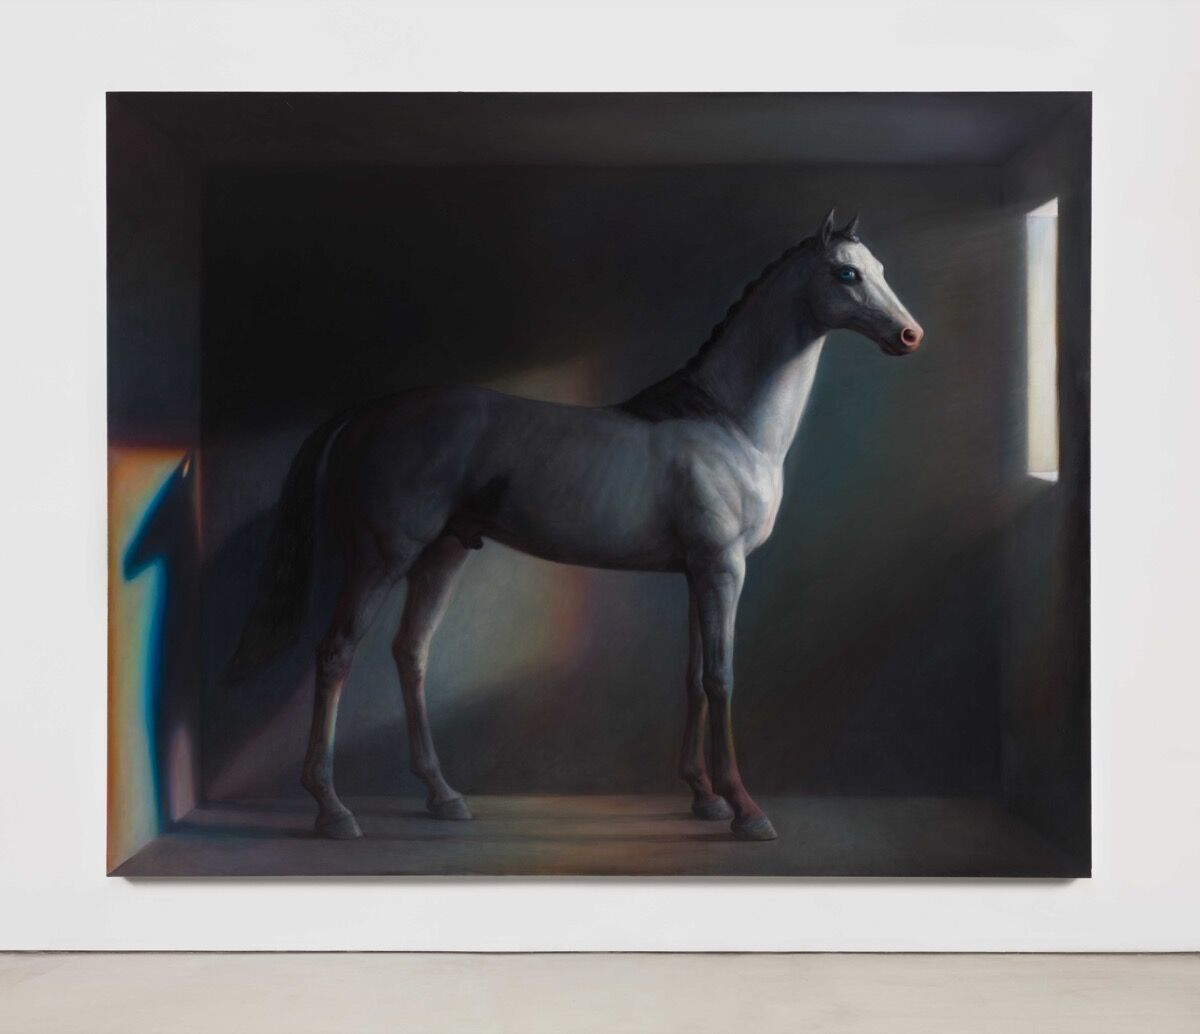 TM Davy, horse (x), 2016. Courtesy of the artist and Van Doren Waxter, New York.